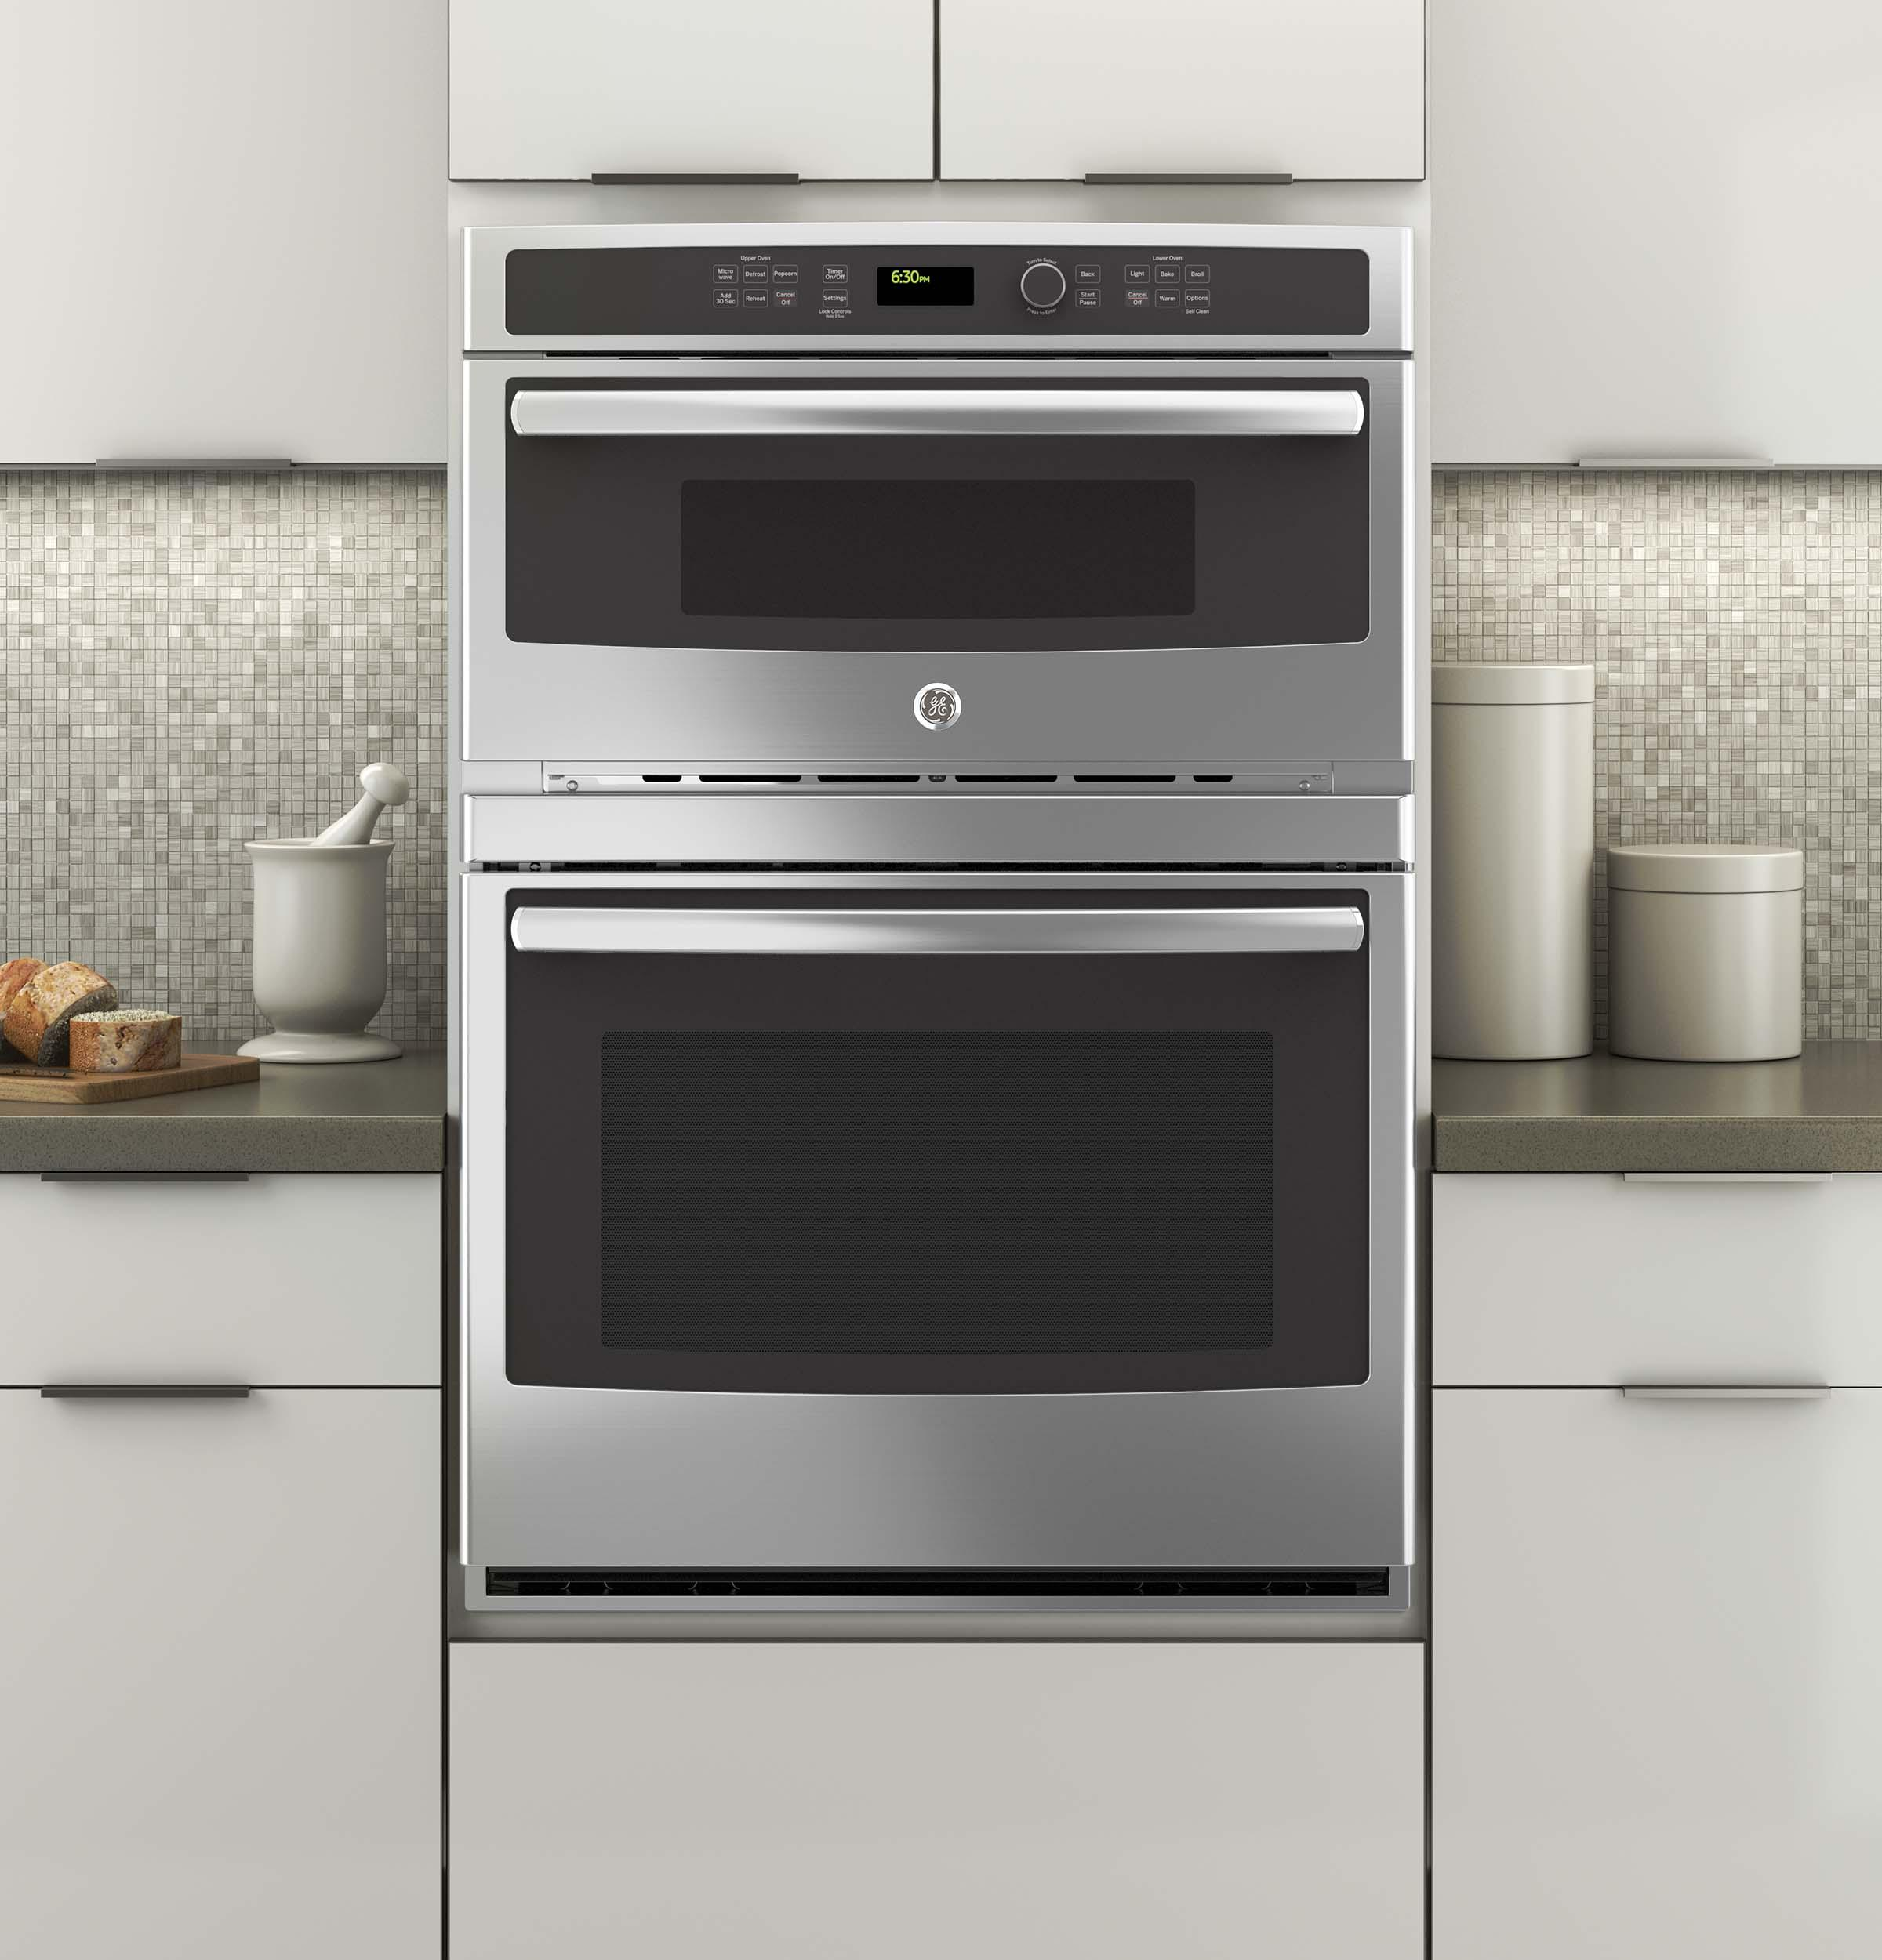 """GE Appliances Electric Wall Ovens 30"""" Built-In Combination Oven - Item Number: JT3800SHSS"""